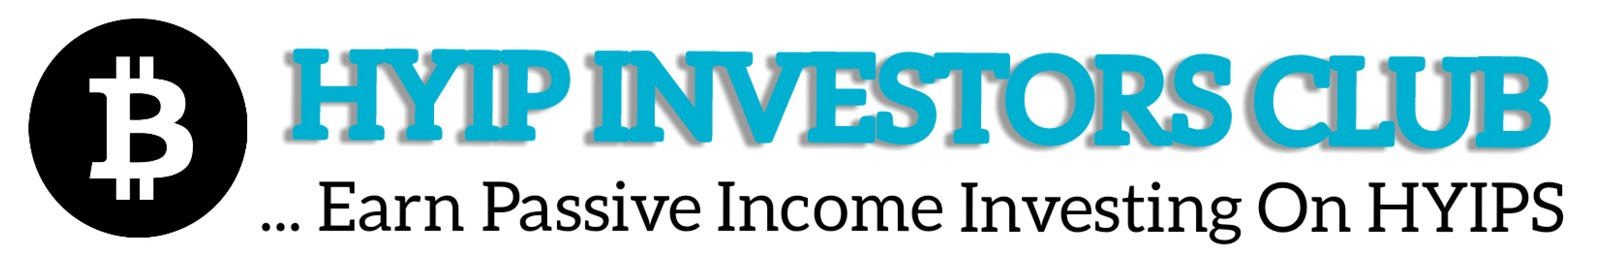 HYIP Investors Club - Earn Passive Income Investing On High Yield Investment Programs